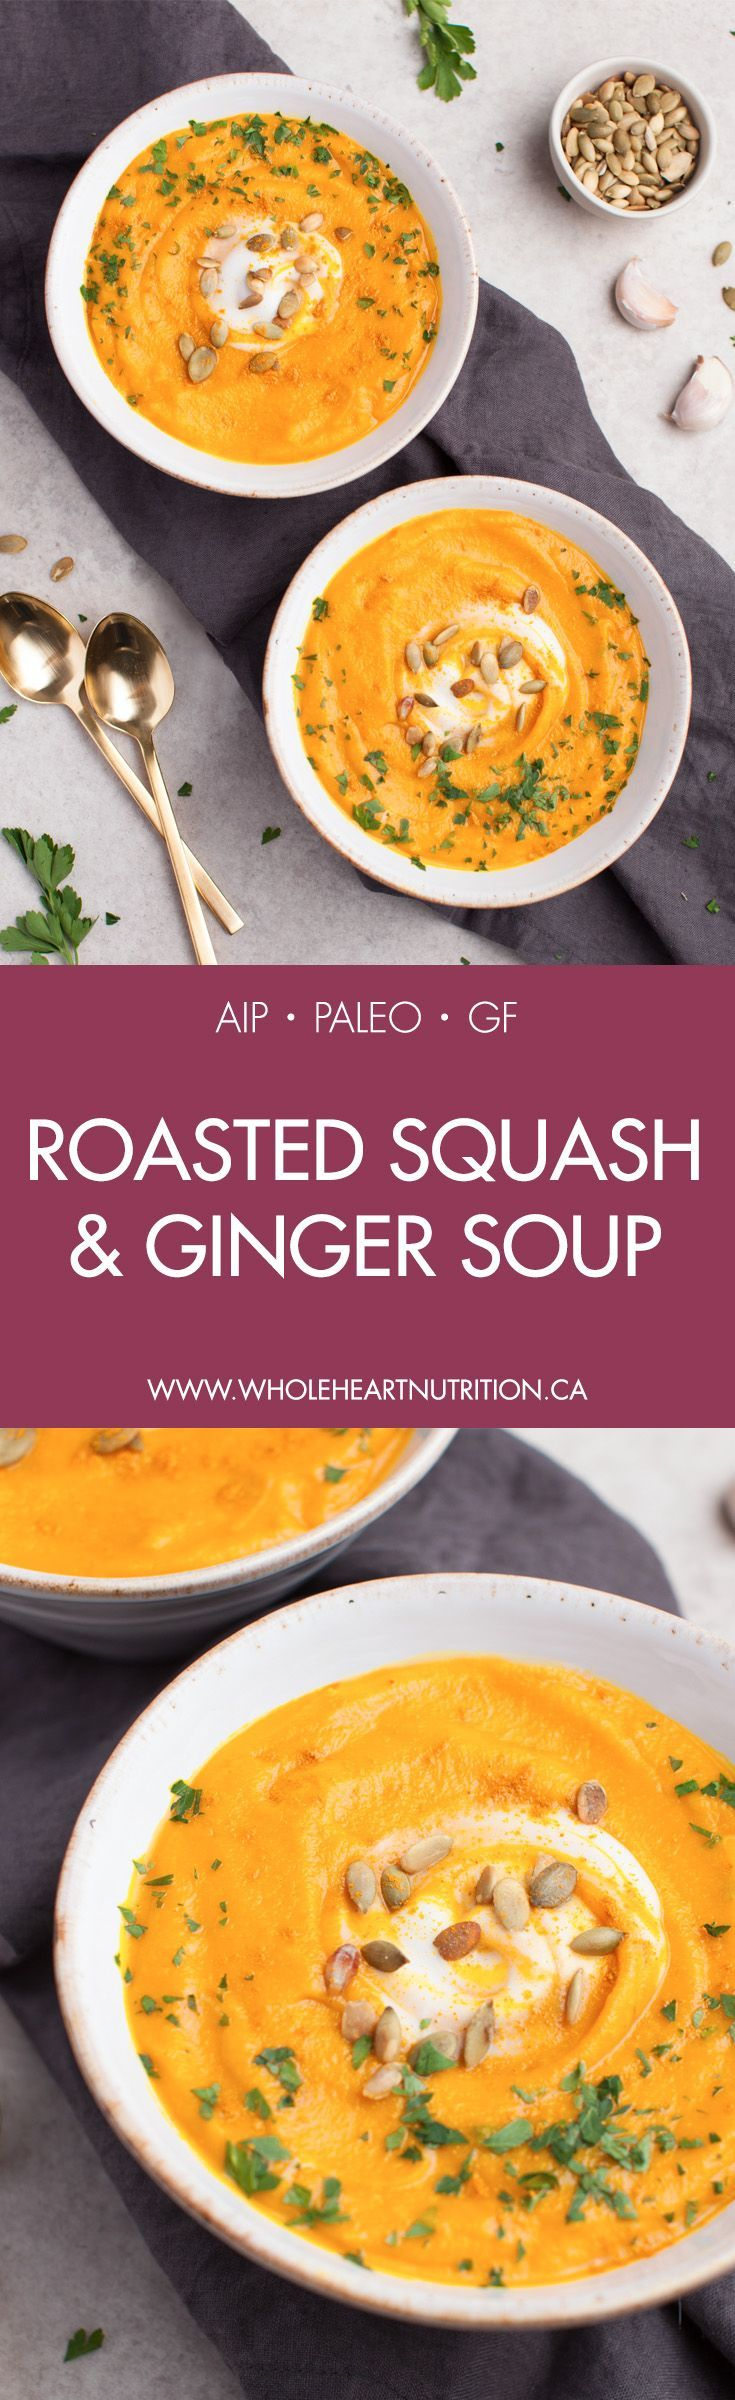 Roasted Squash Ginger Soup Recipe Healthy Soup Recipes Roasted Squash Paleo Recipes